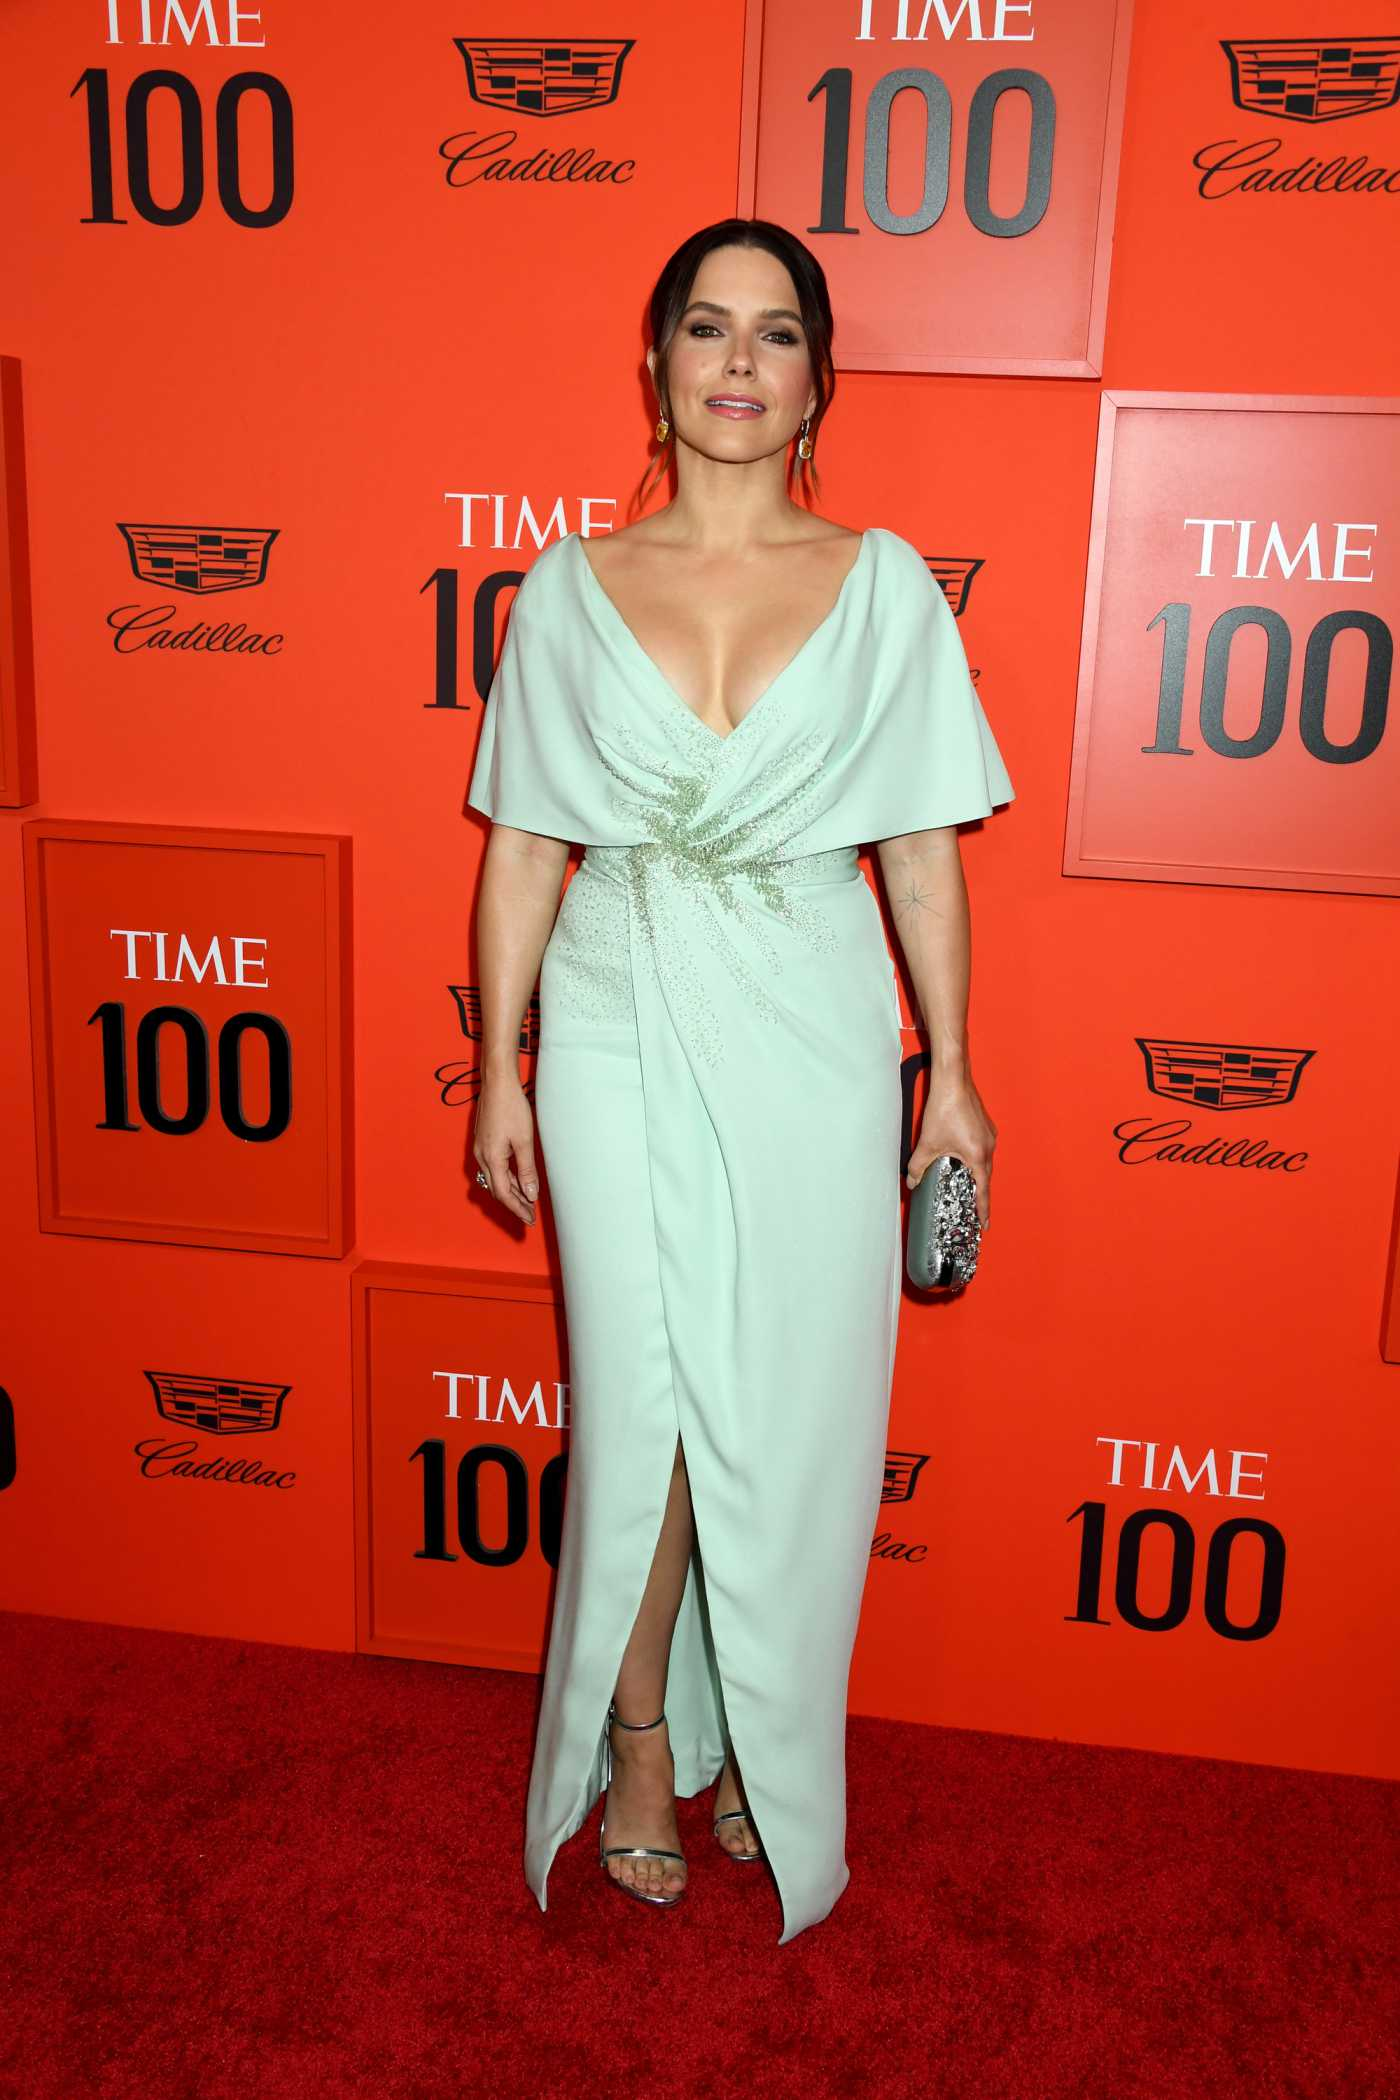 Sophia Bush Attends 2019 TIME 100 Gala at Lincoln Center in NY  04/23/2019